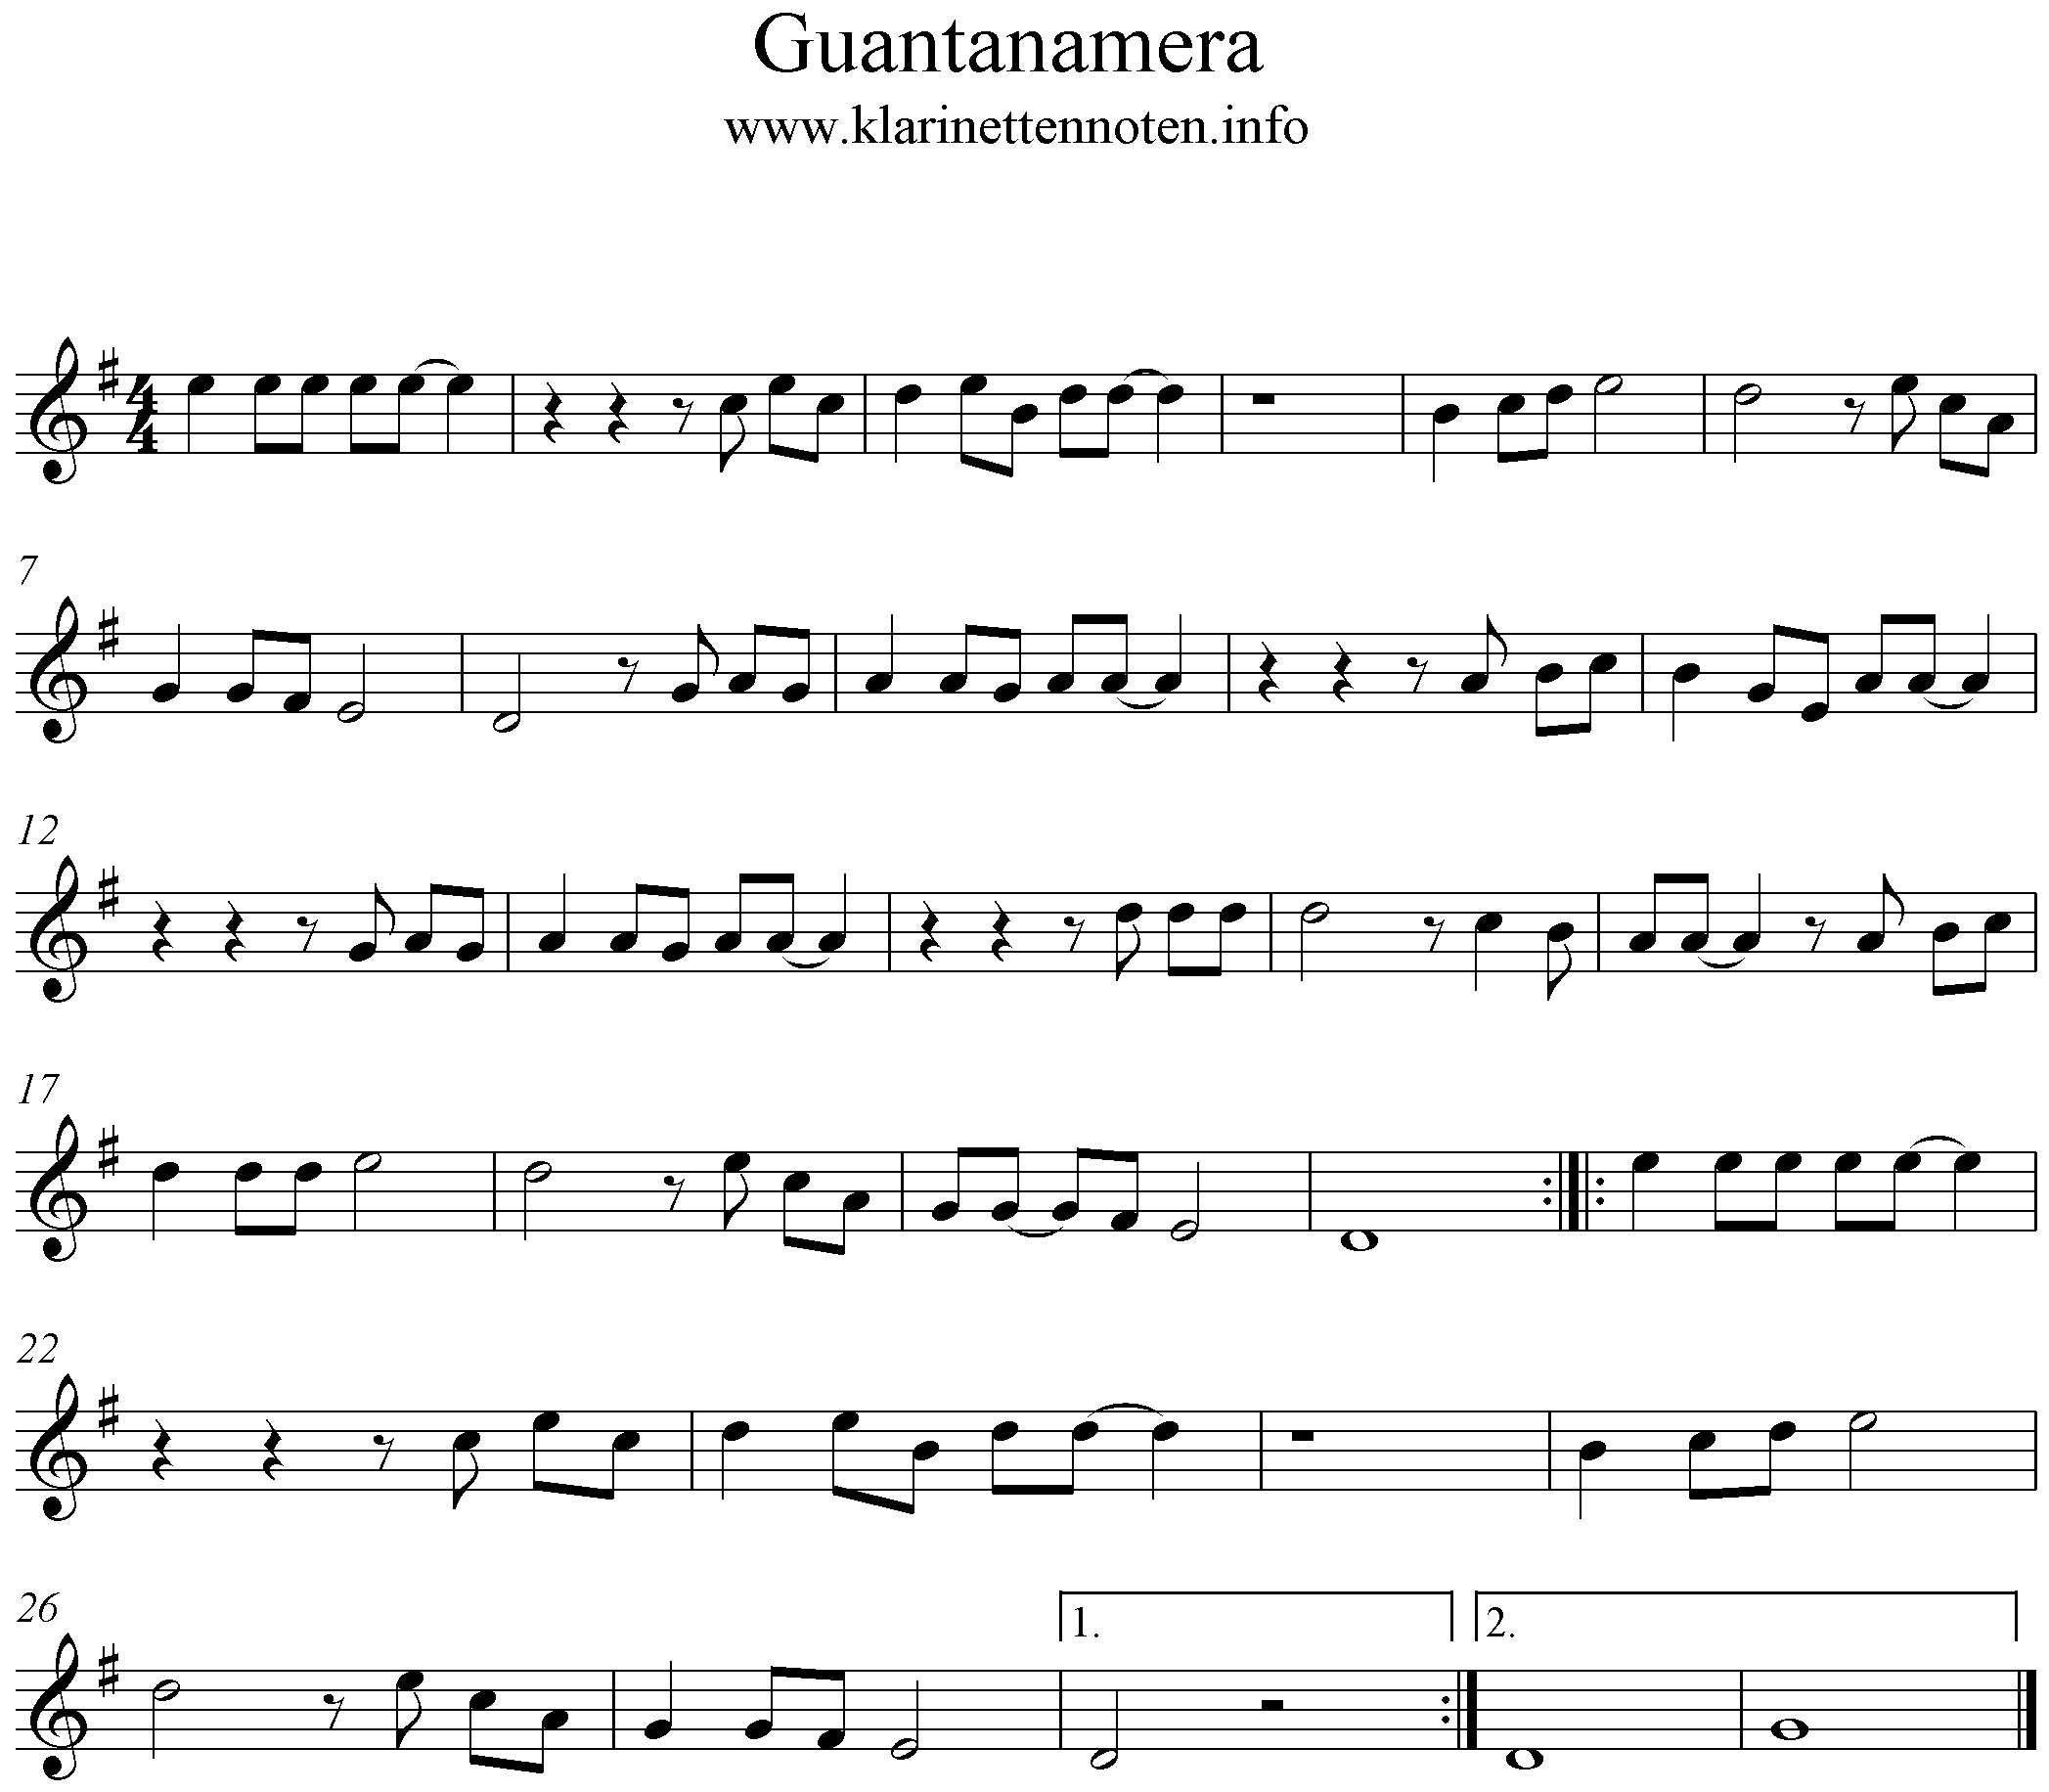 Guantanamera Noten für Klarinette, Clarinet, G-Major